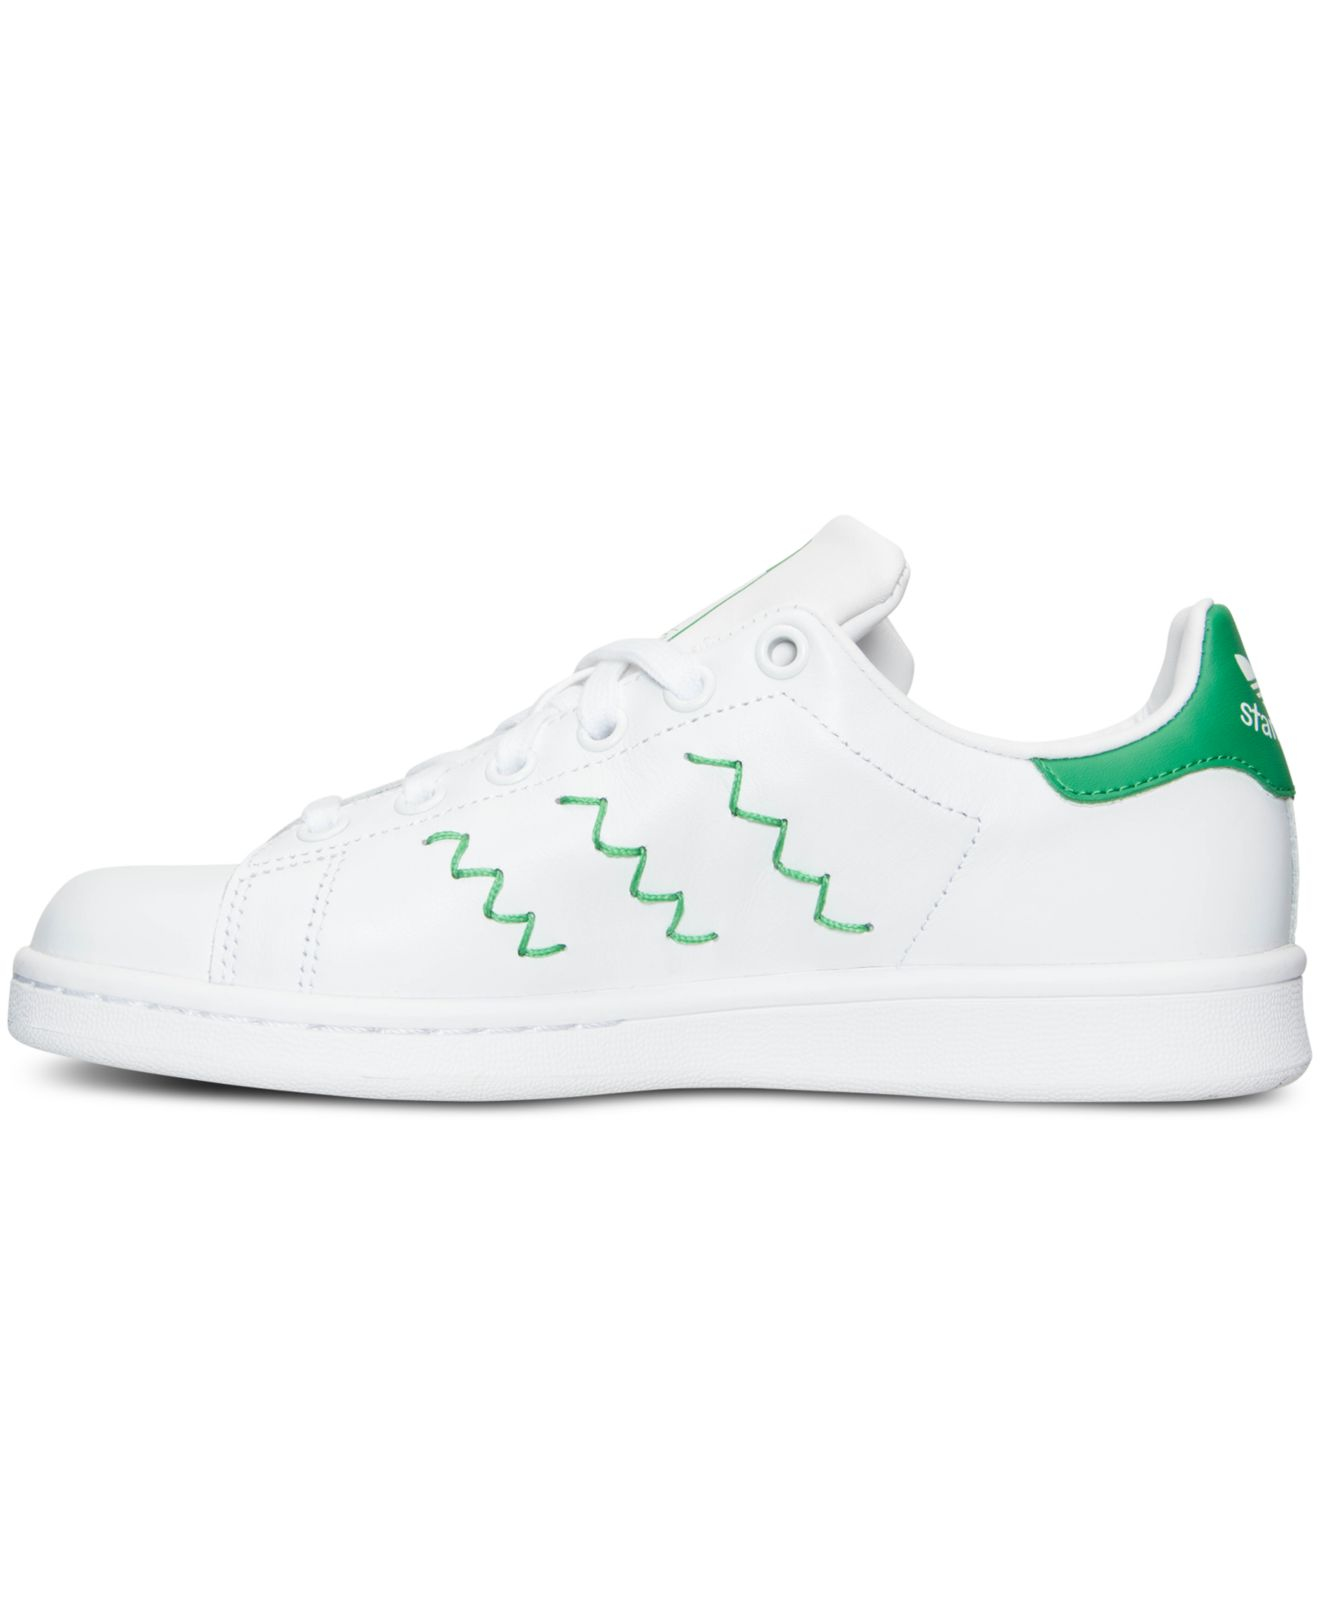 stan smith squiggly lines off 54% - www